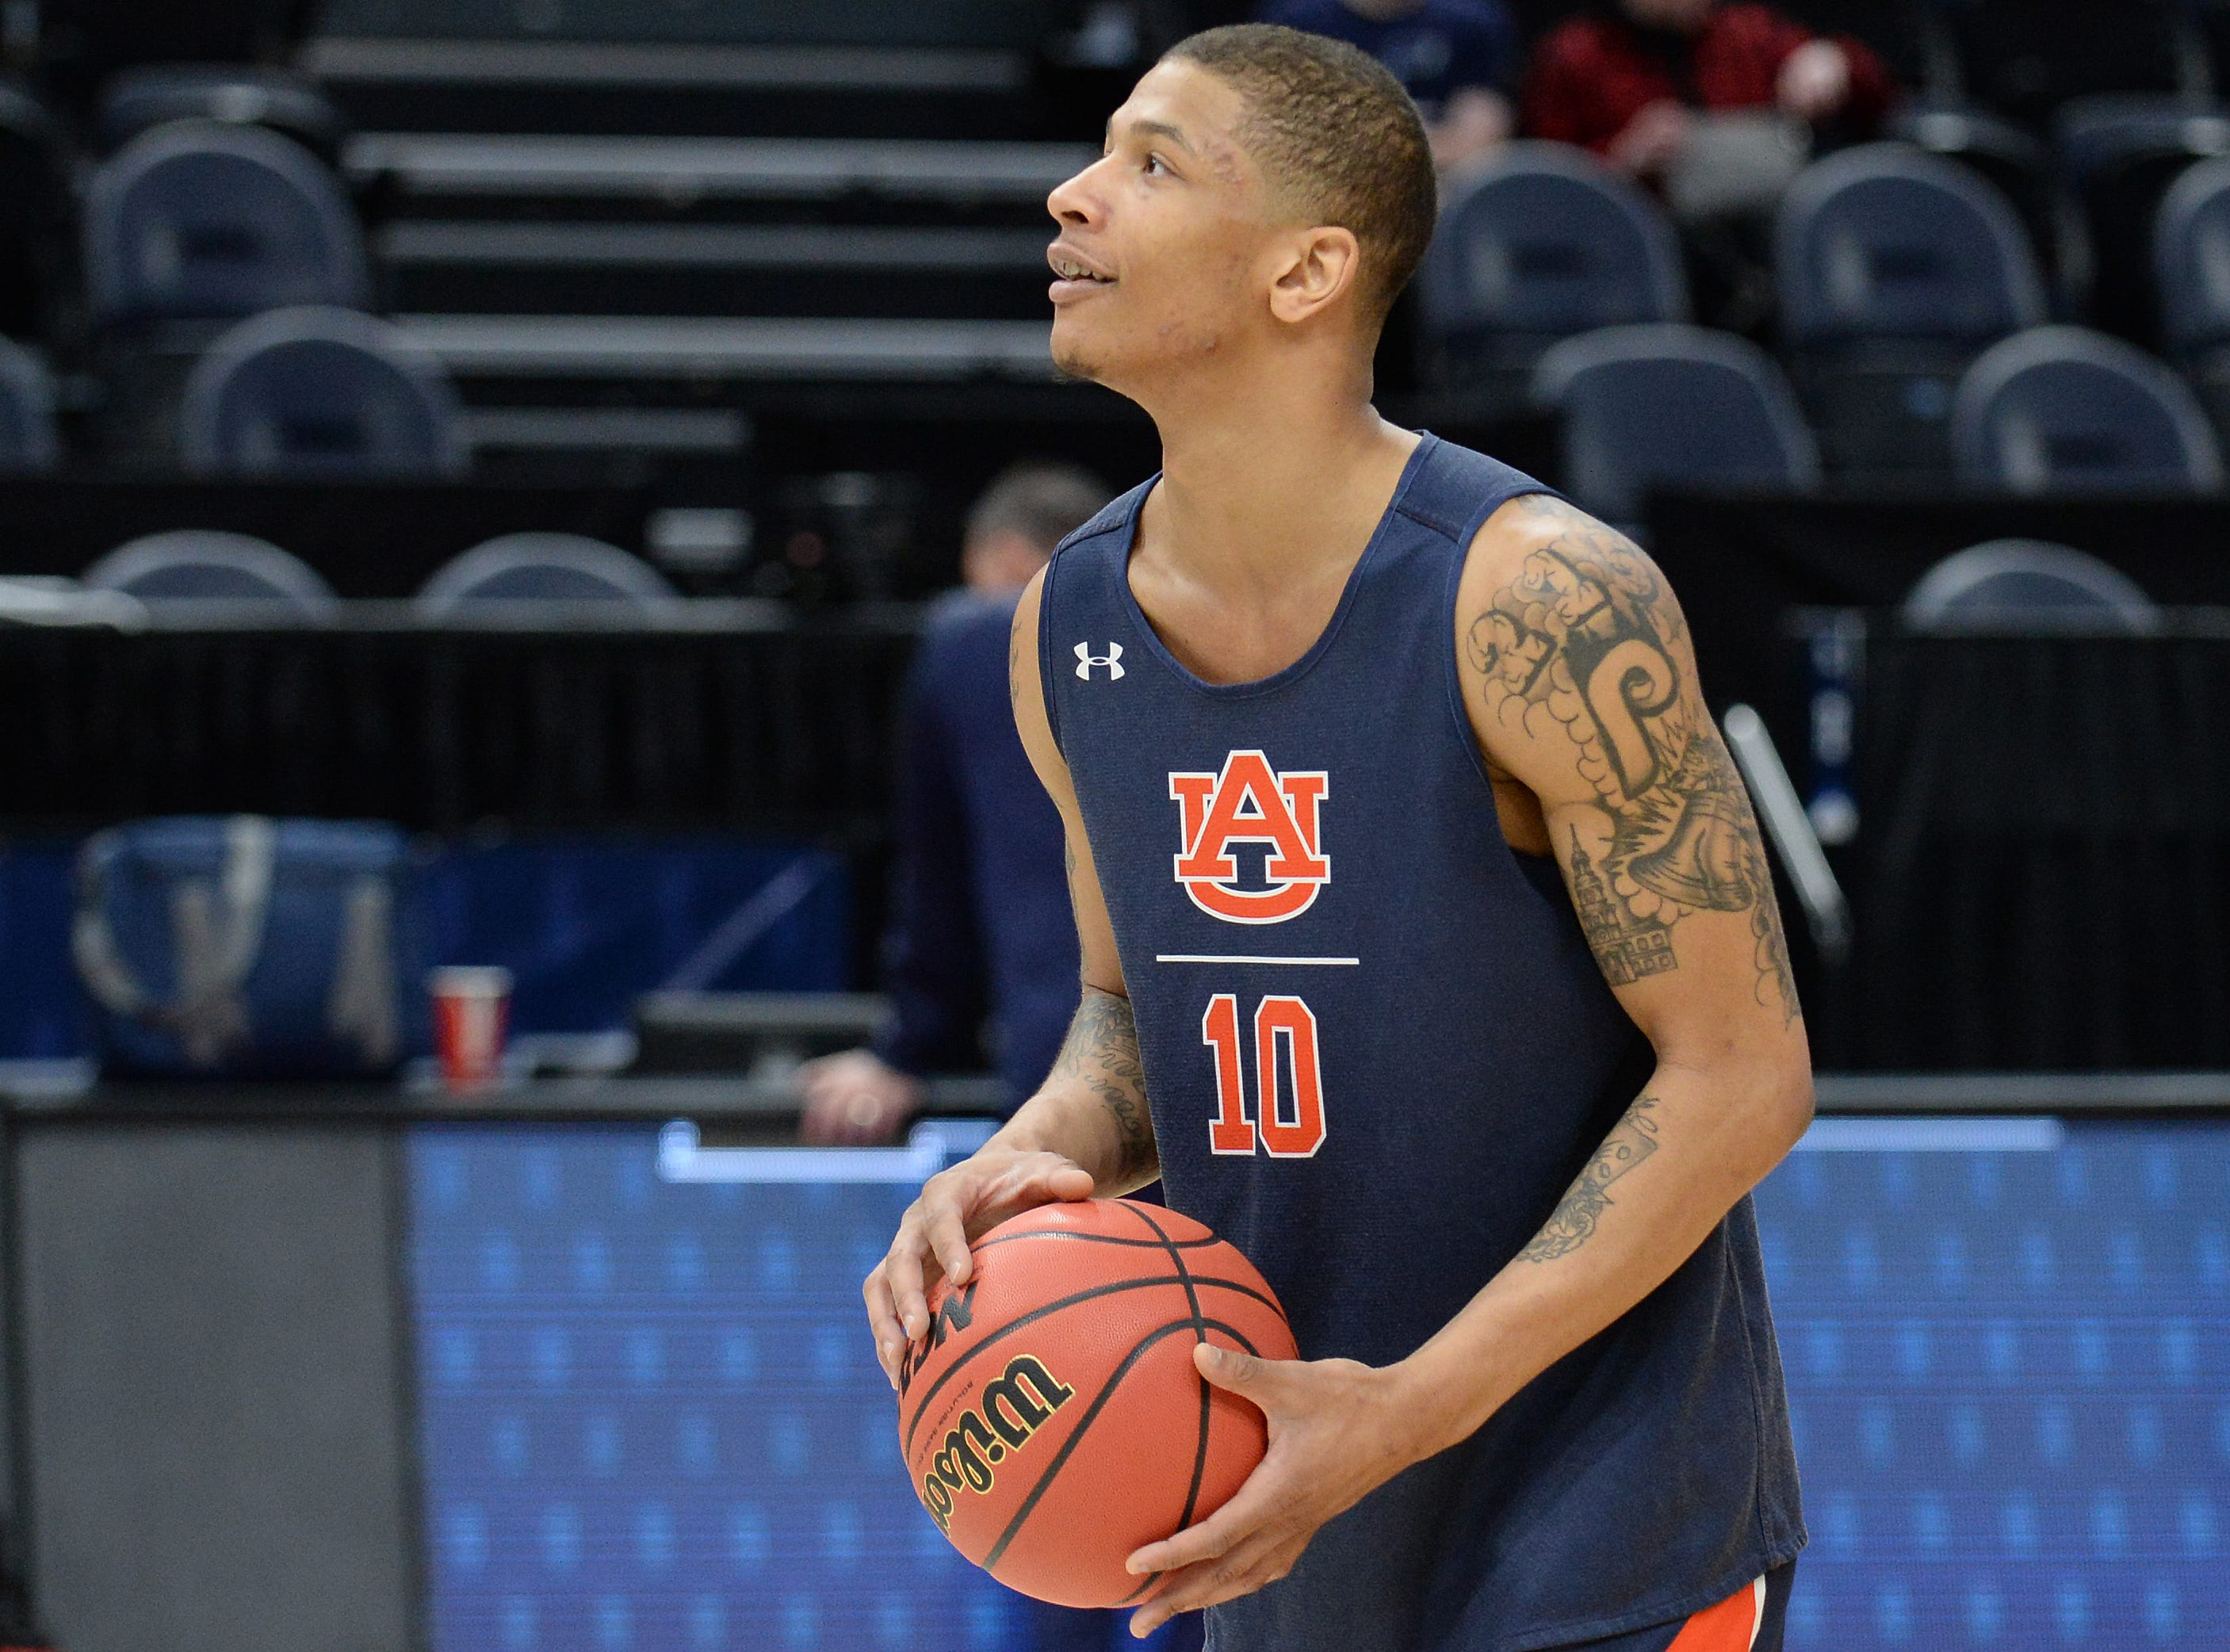 March 20, 2019; Salt Lake City, UT, USA; Auburn Tigers guard Samir Doughty (10) during practice before the first round of the 2019 NCAA Tournament at Vivint Smart Home Arena. Mandatory Credit: Gary A. Vasquez-USA TODAY Sports